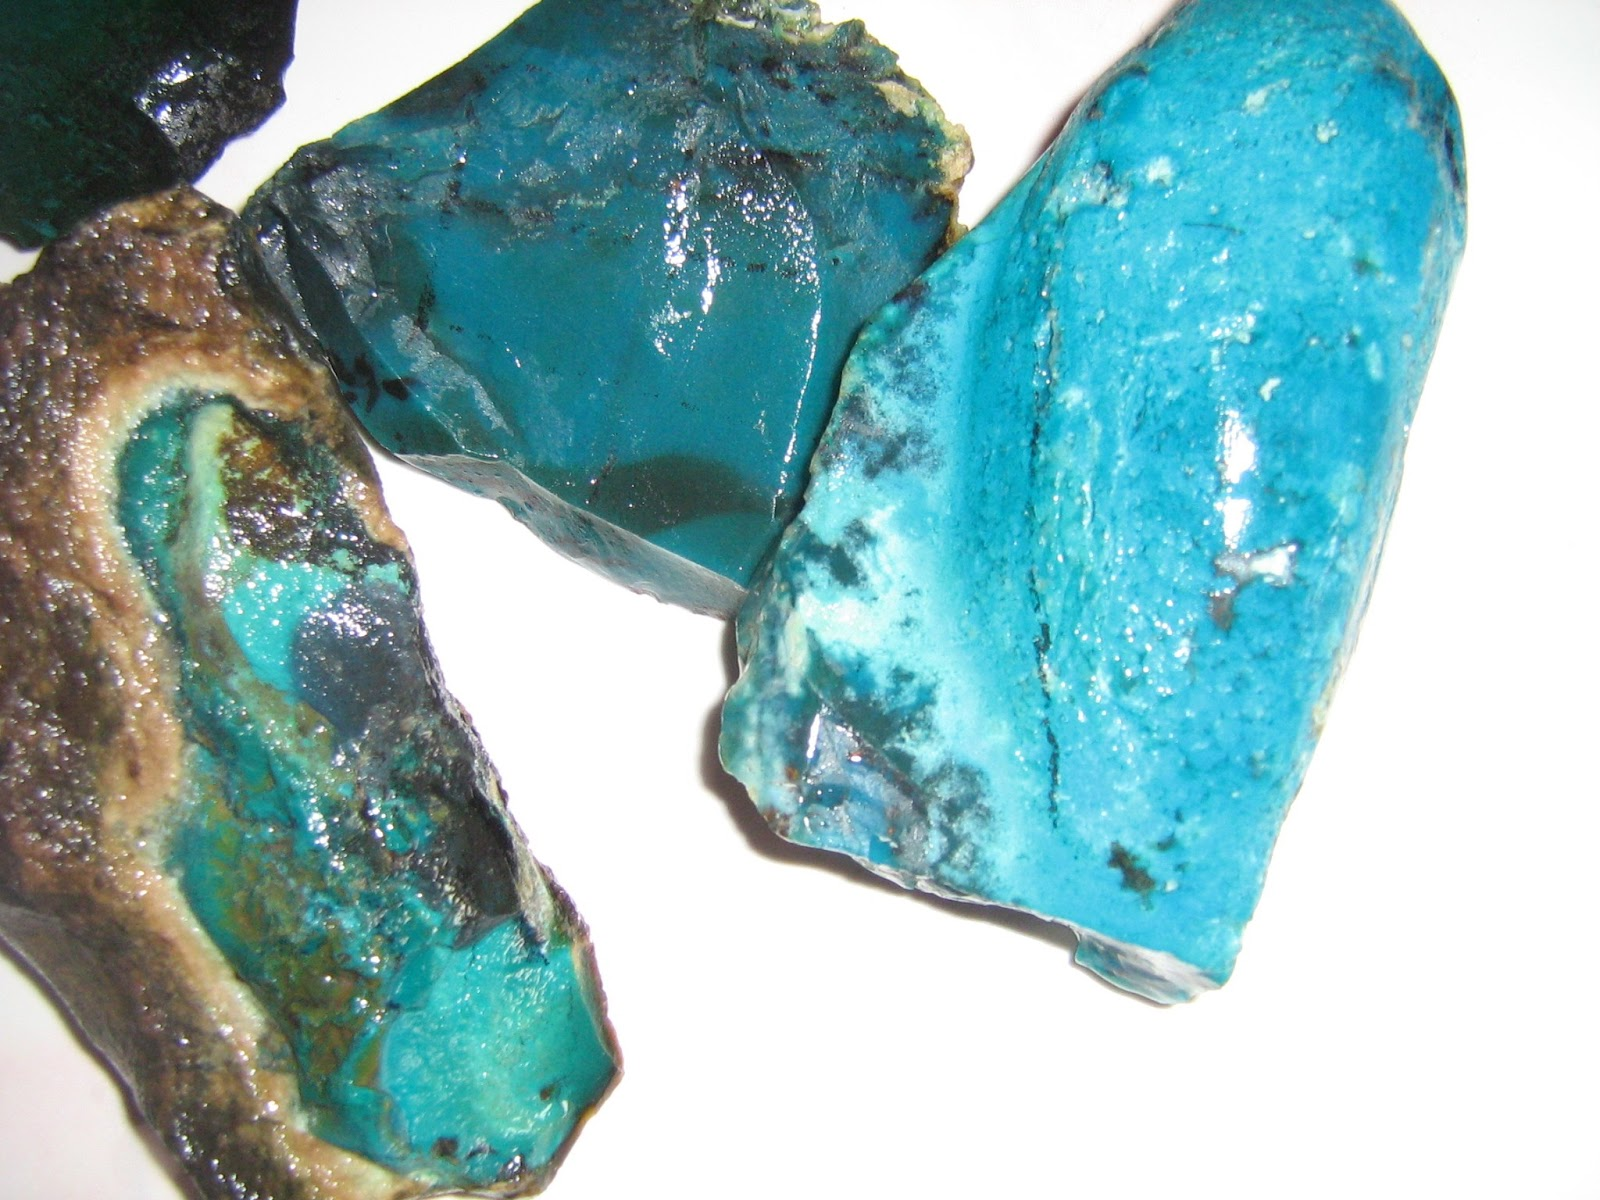 Jade (Batu Bacan) roughs from the Indonesian Islands of Bacan ...